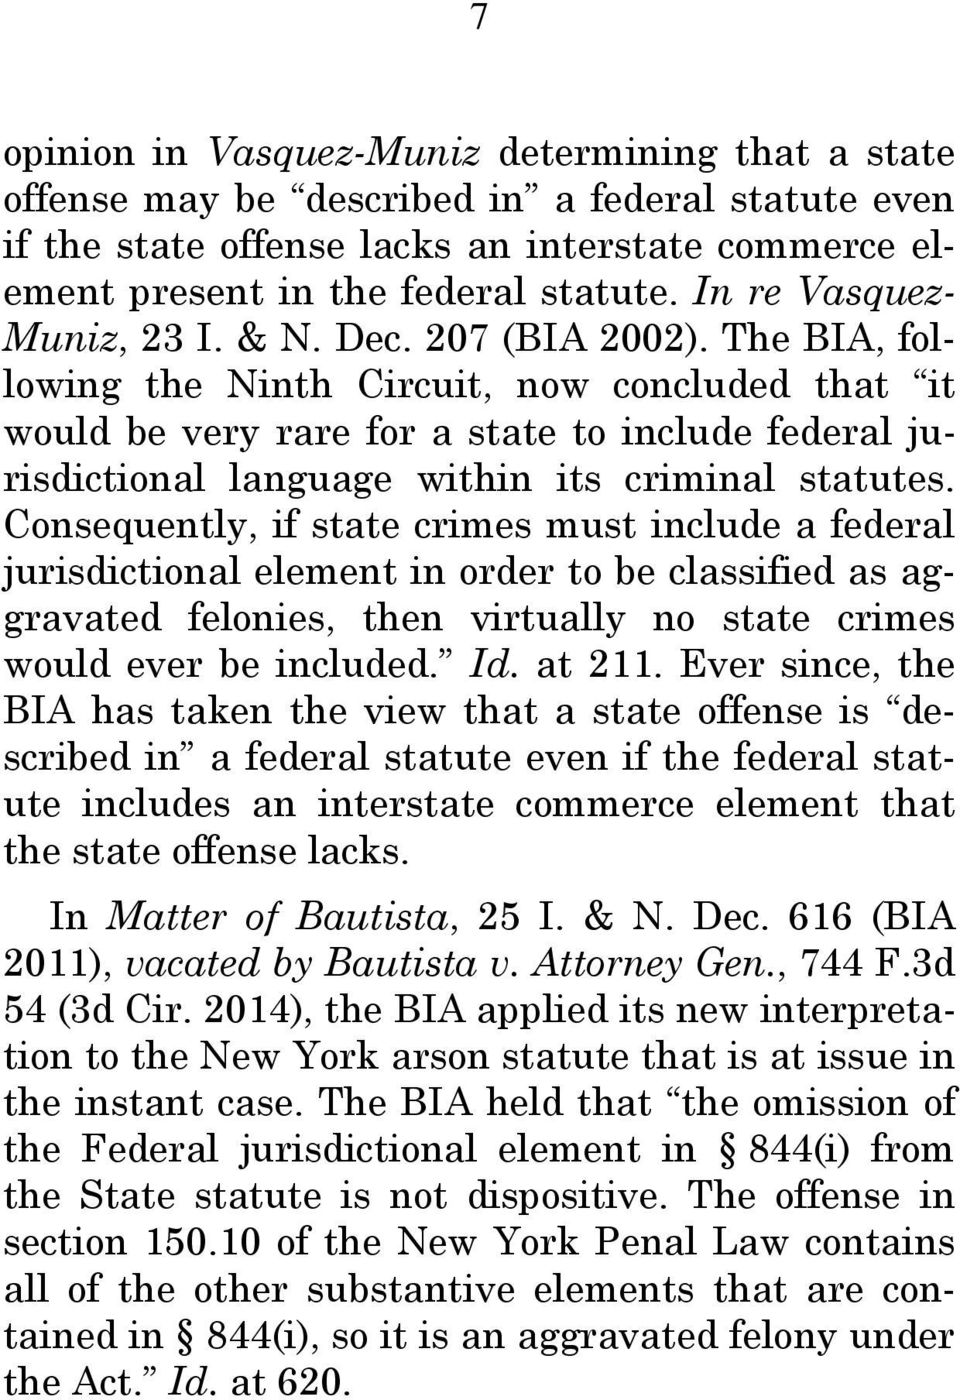 The BIA, following the Ninth Circuit, now concluded that it would be very rare for a state to include federal jurisdictional language within its criminal statutes.